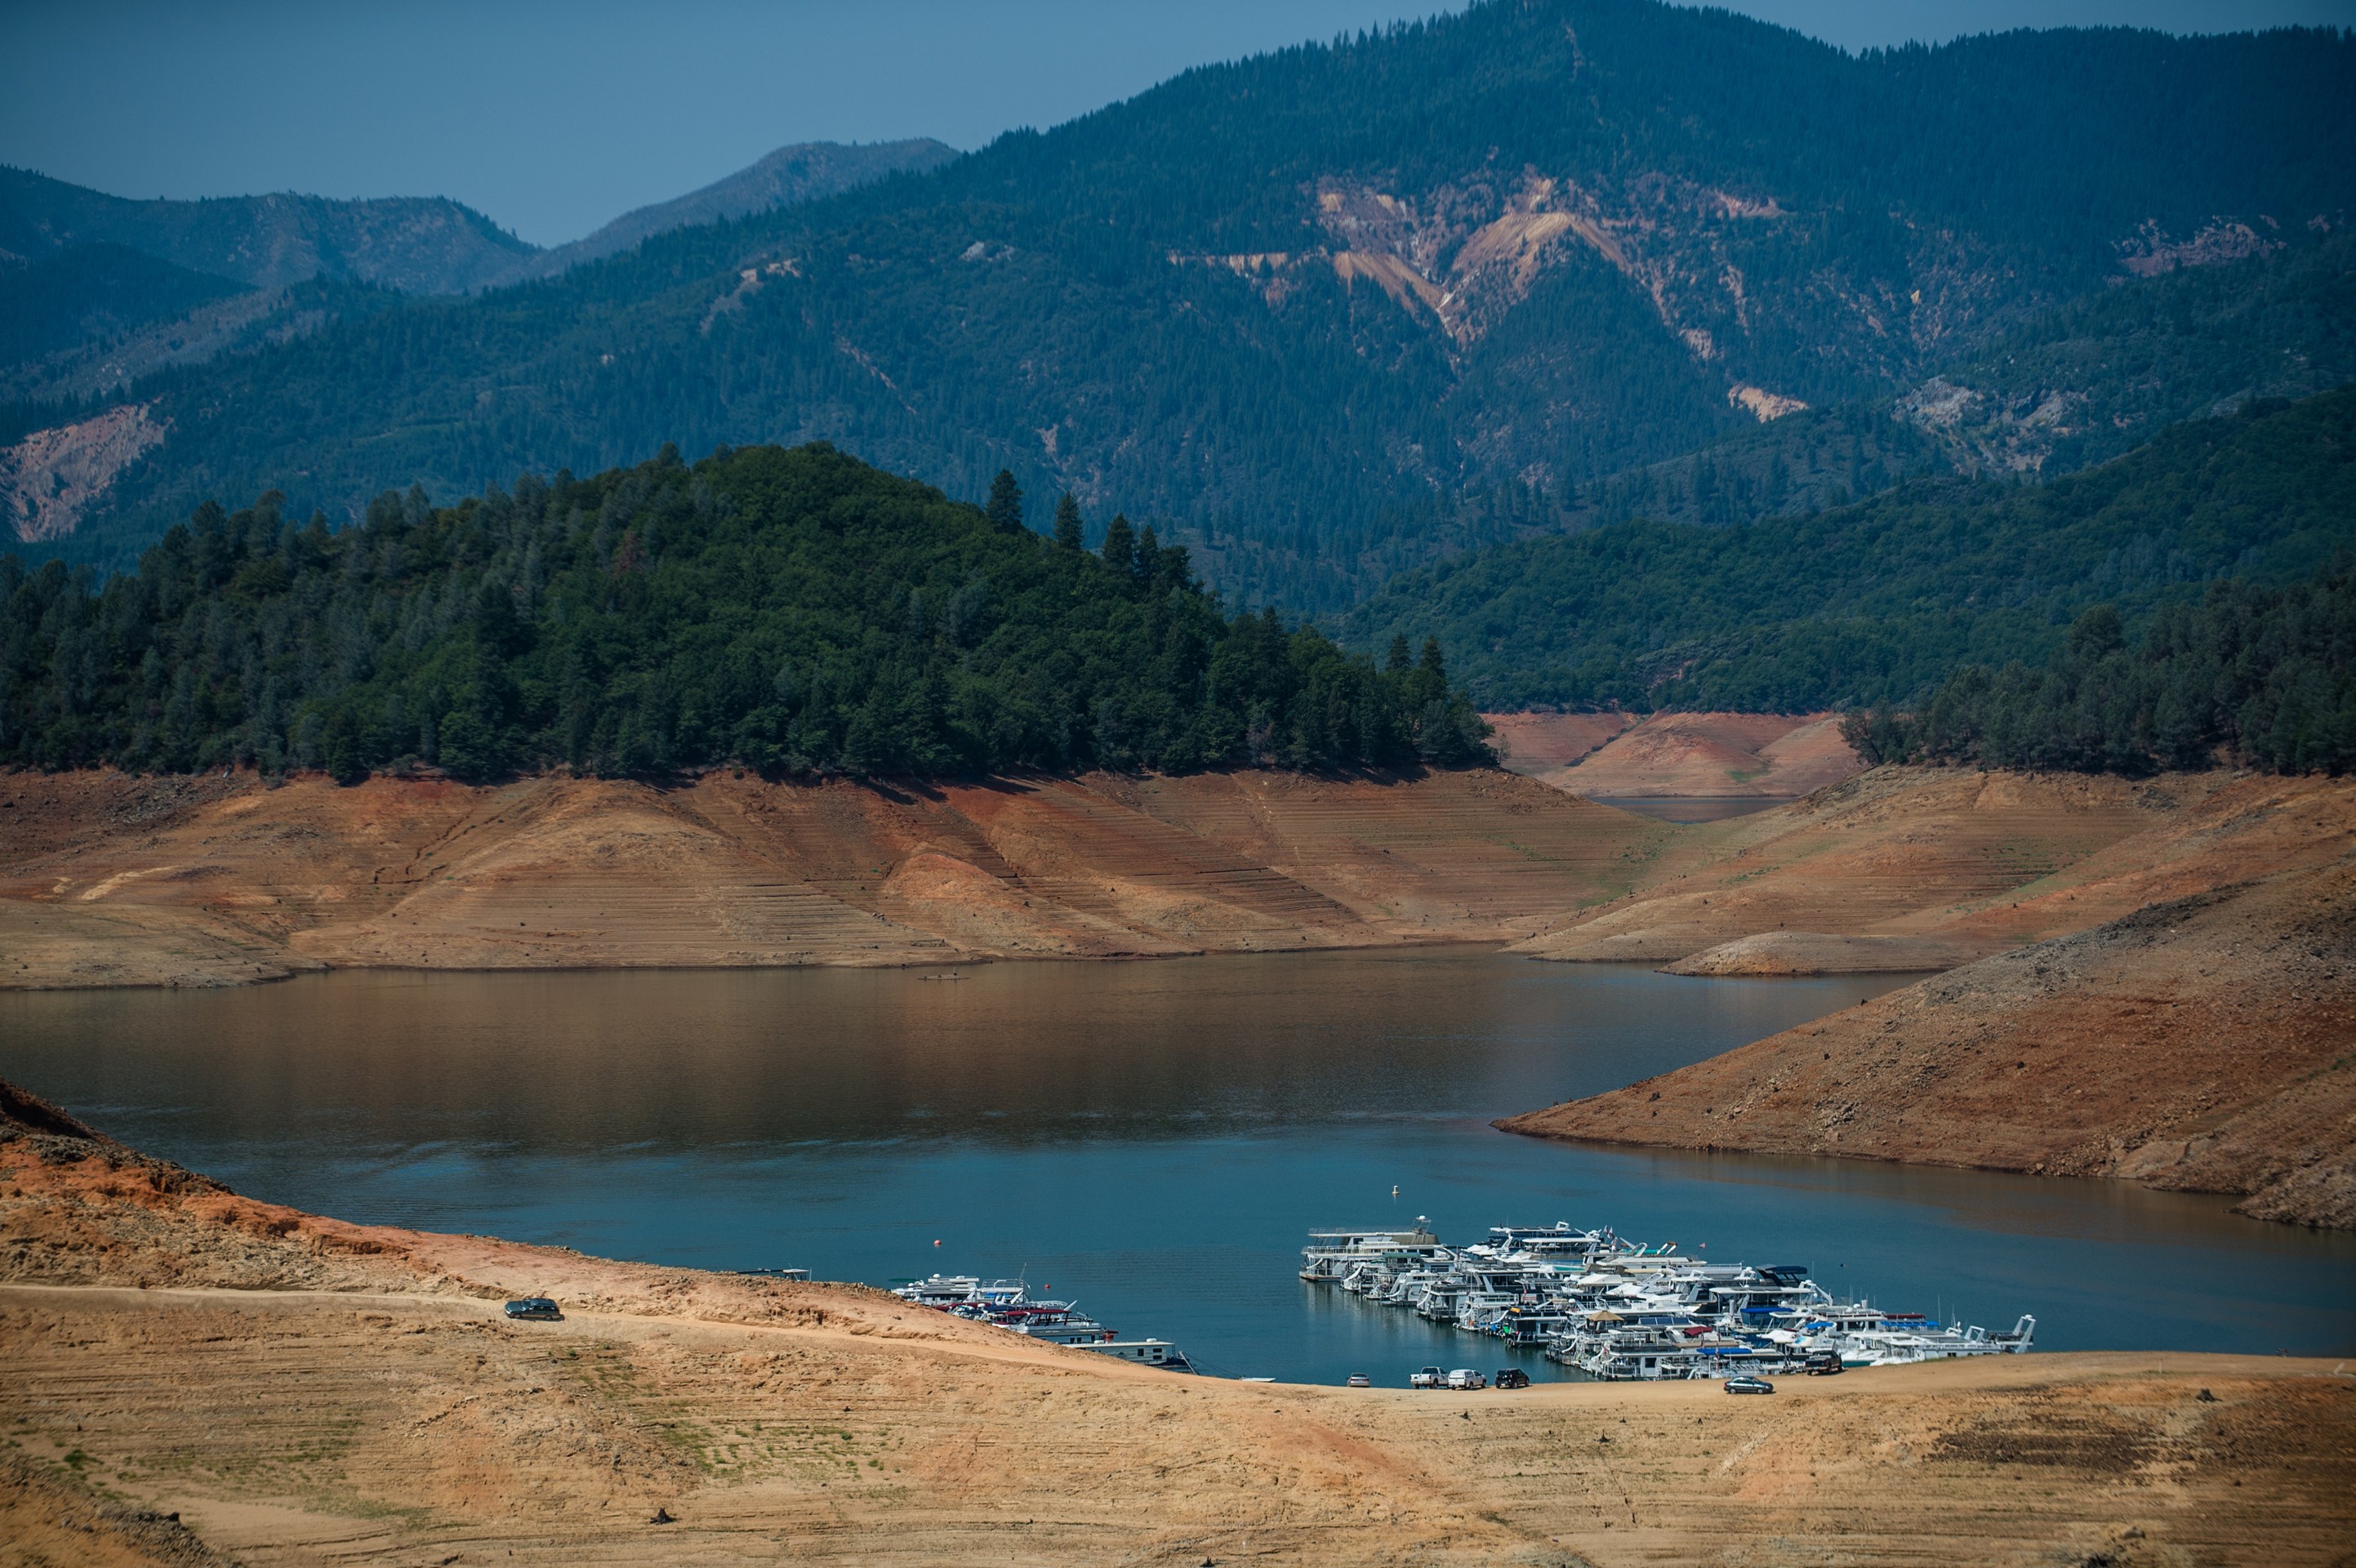 Groundwater: California's big unknown | NOAA Climate.gov